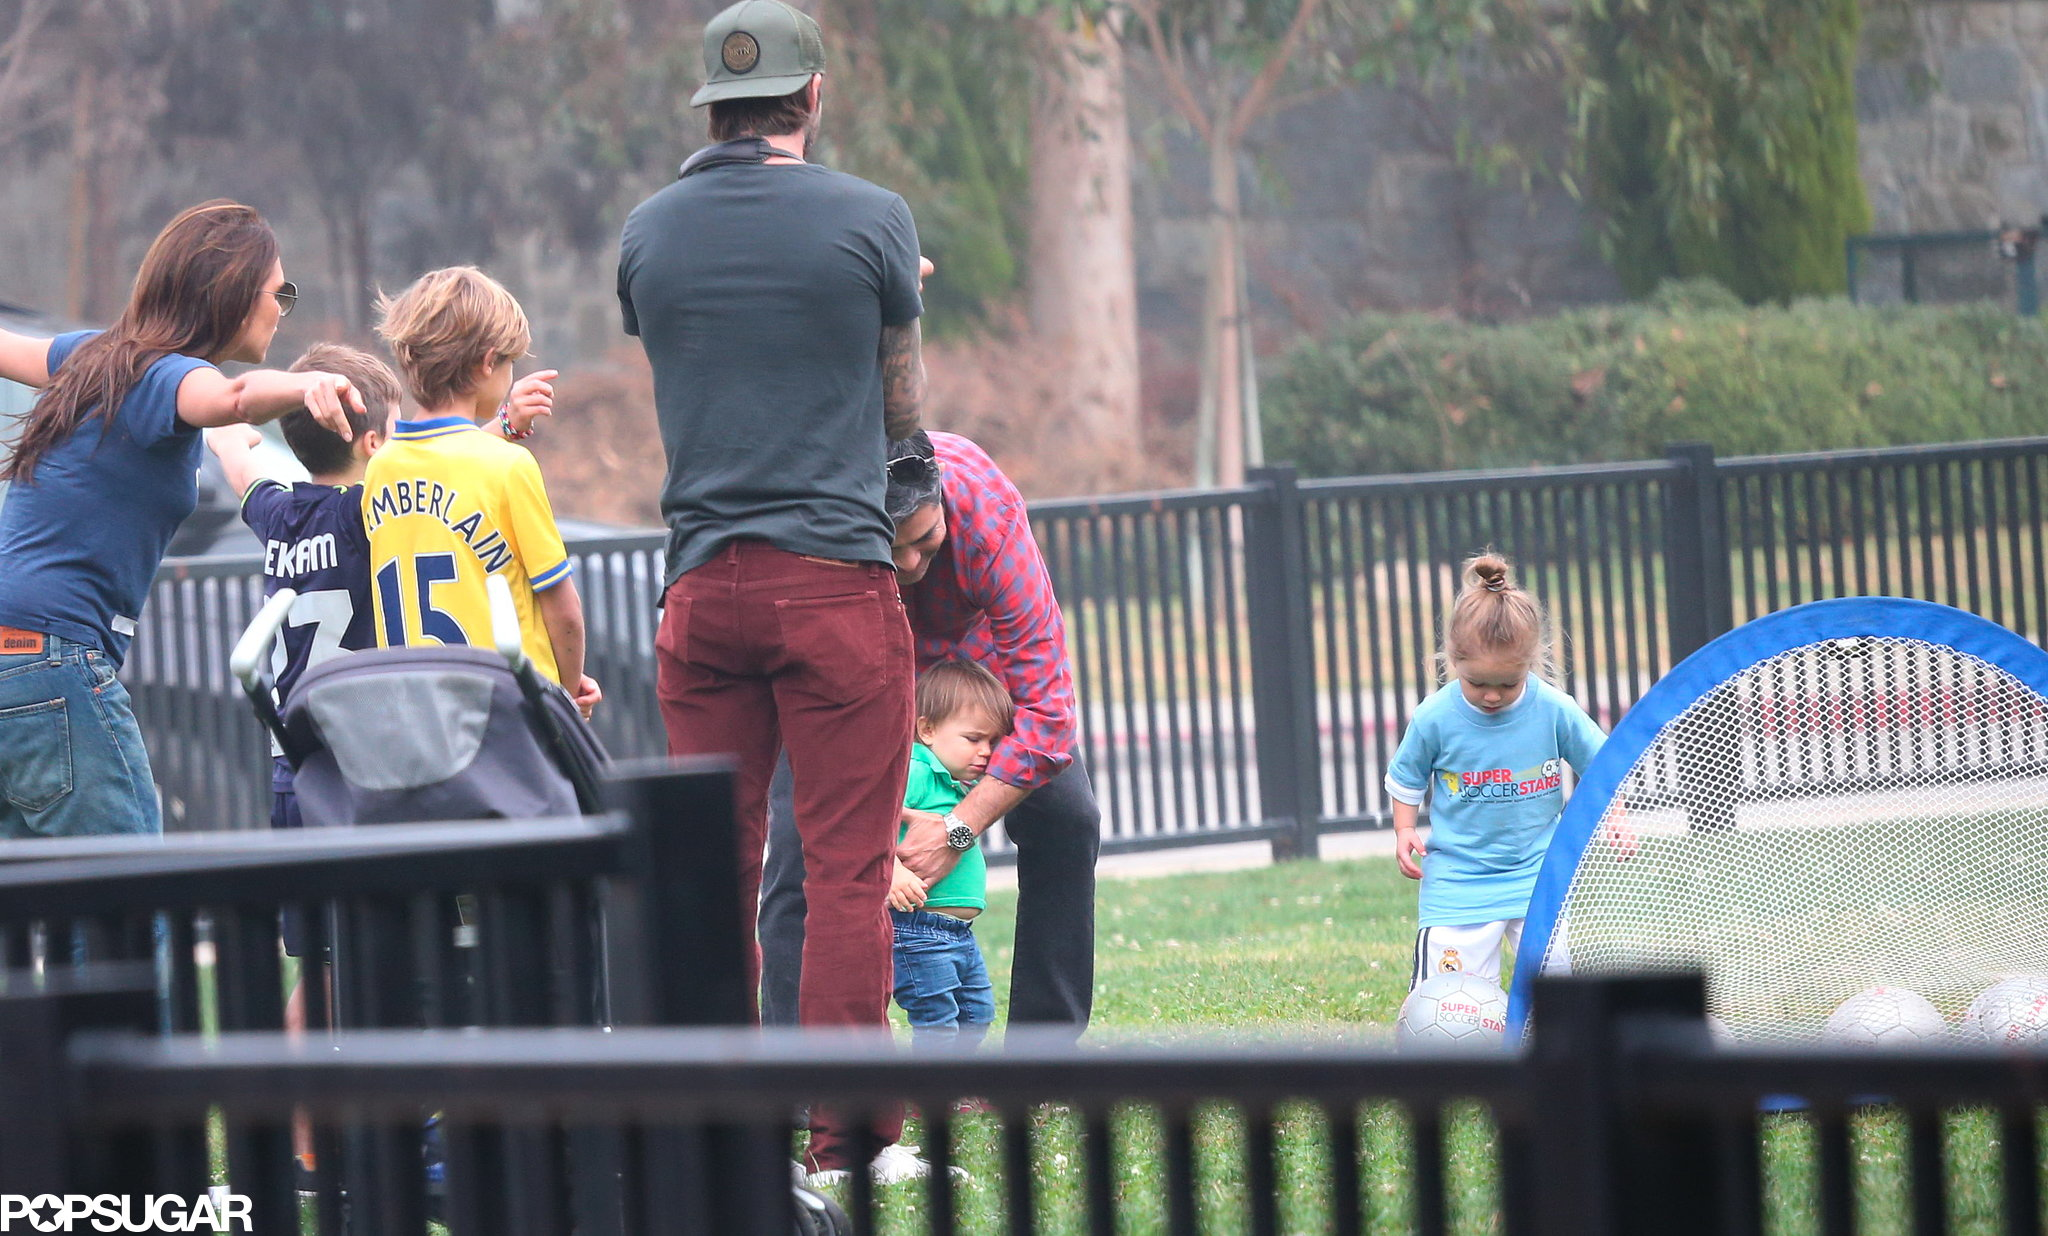 David Beckham and Victoria Beckham rooted for their little one, Harper, while she played soccer.